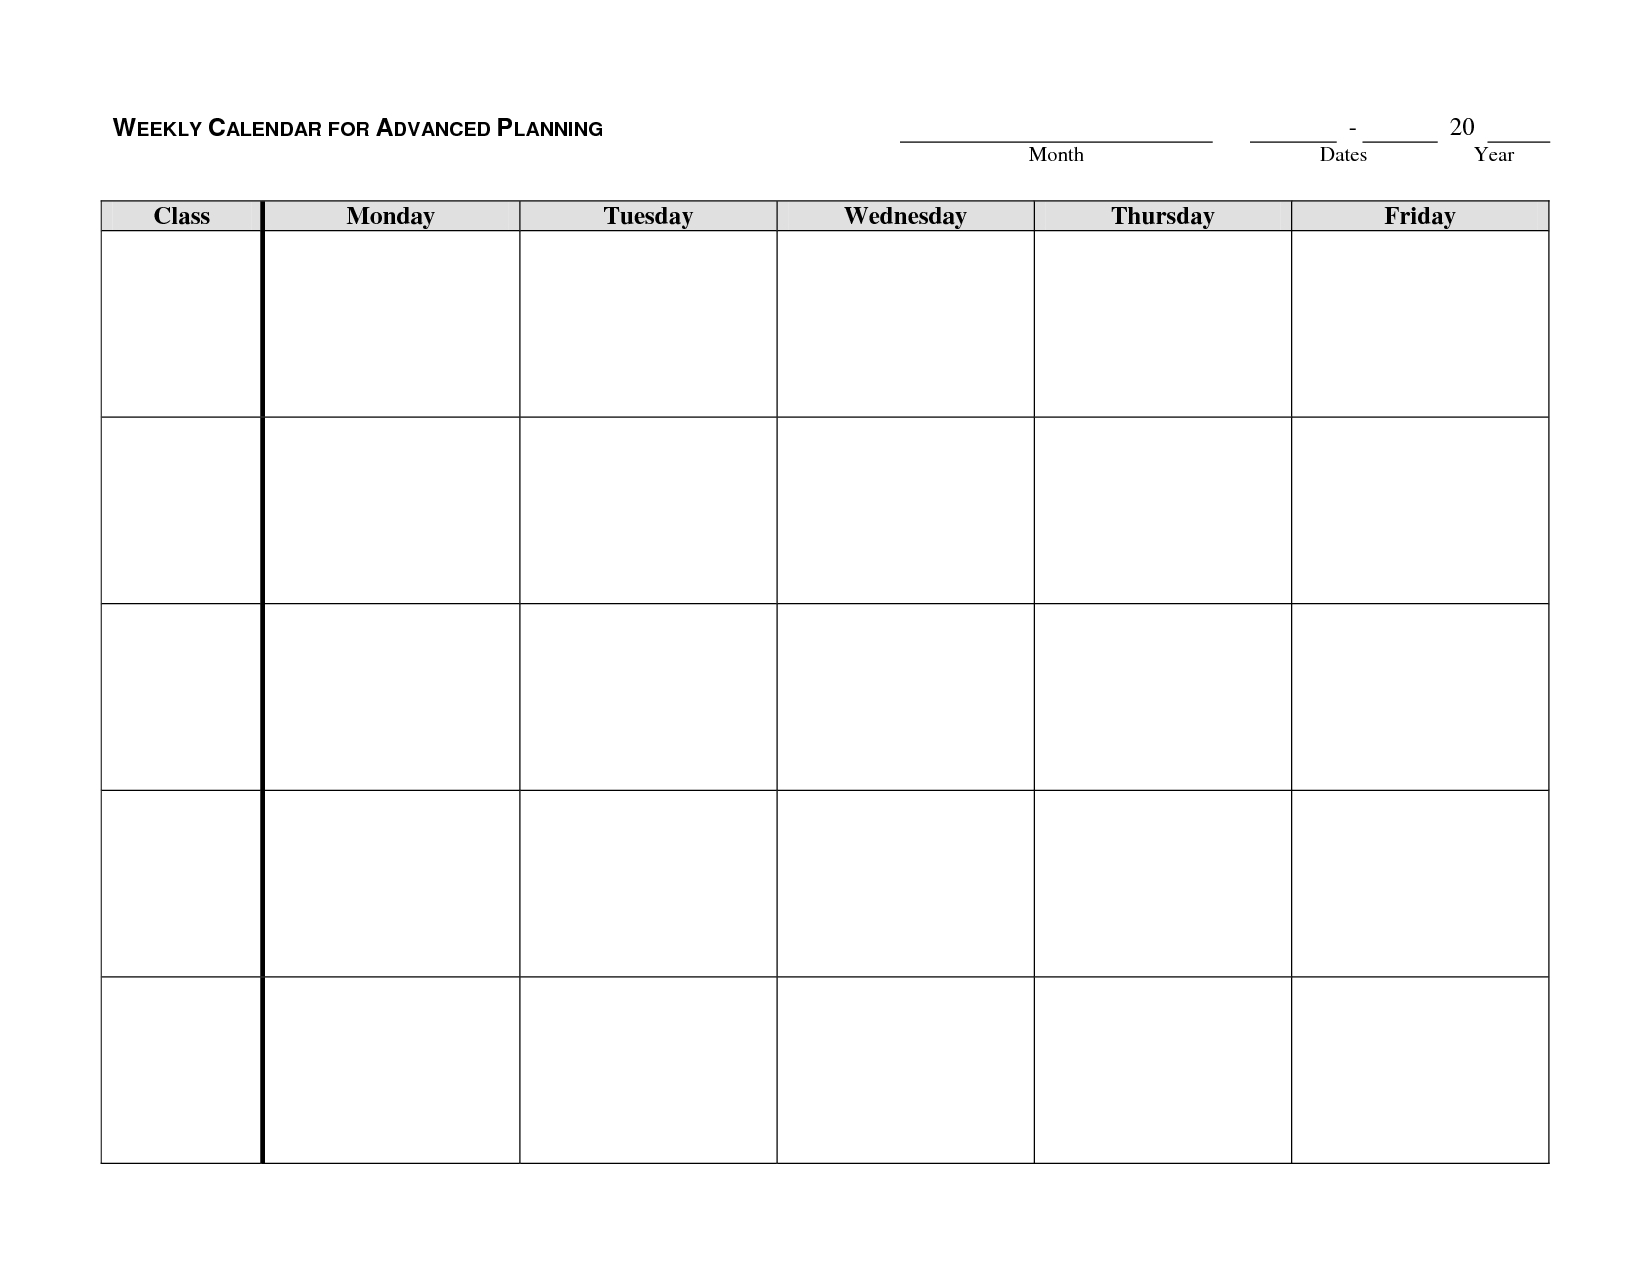 Weekly Calendar Template Monday To Friday | Calendar Weekly Calendar Monday – Friday